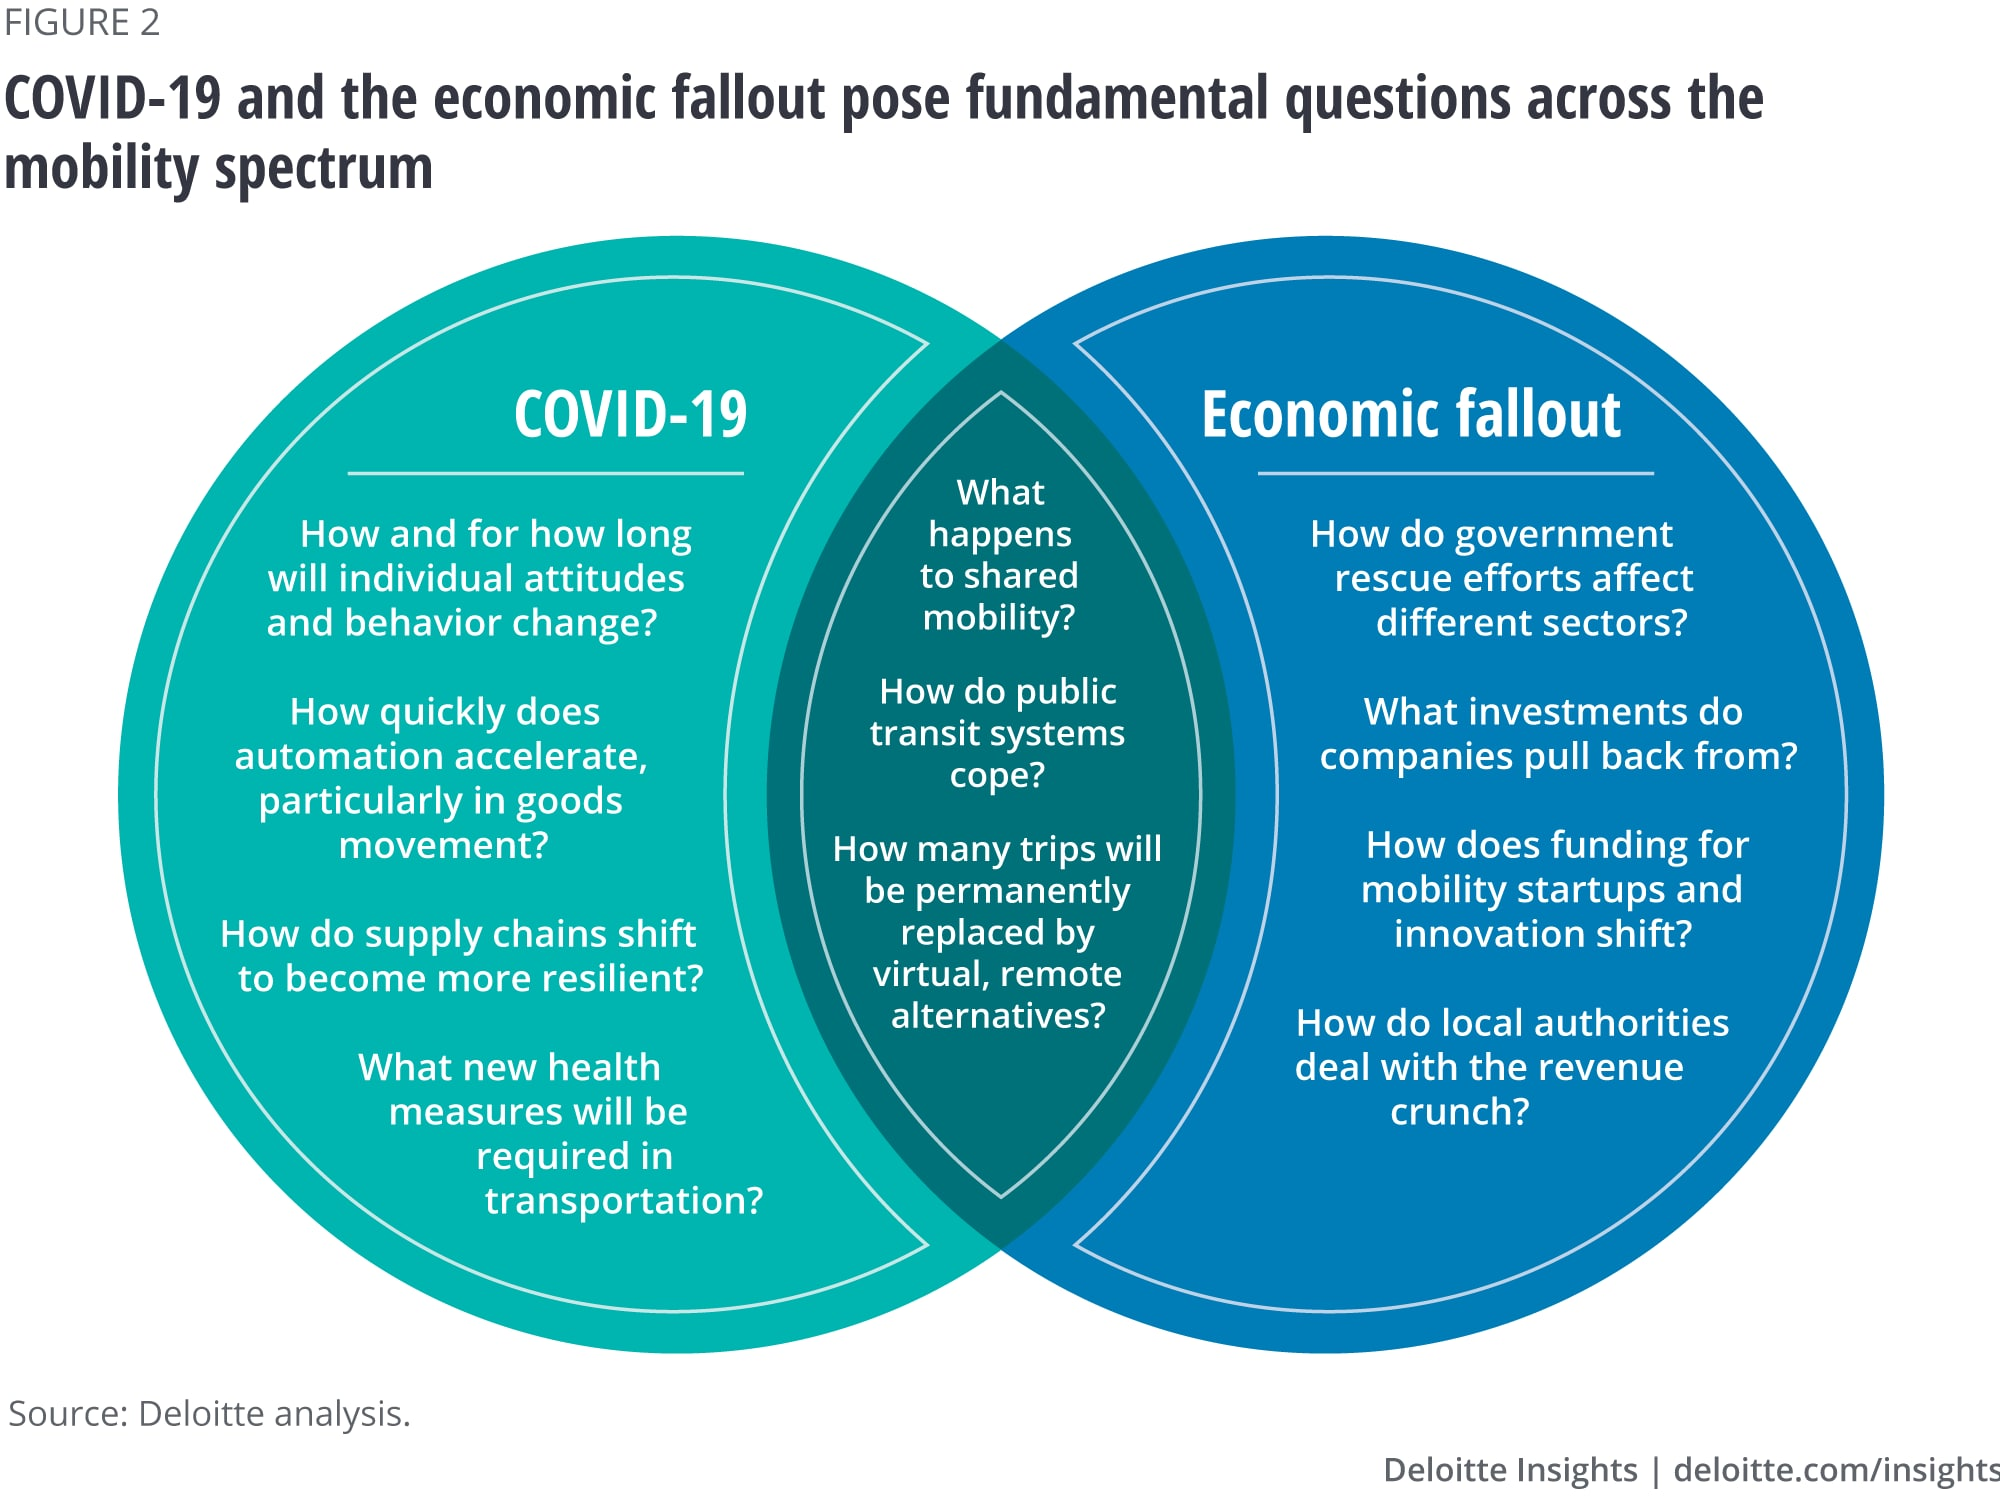 COVID-19 and the economic fallout pose fundamental questions across the mobility spectrum